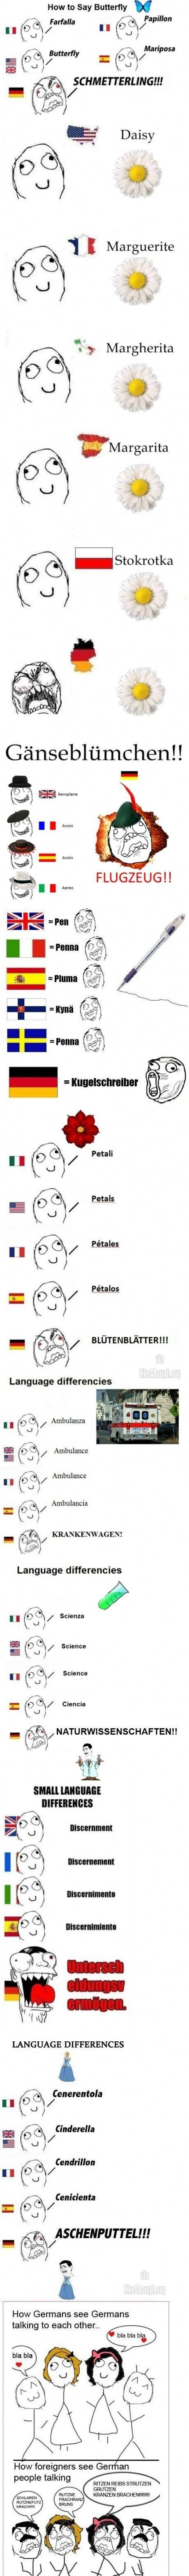 THE LOVELY GERMAN LANGUAGE